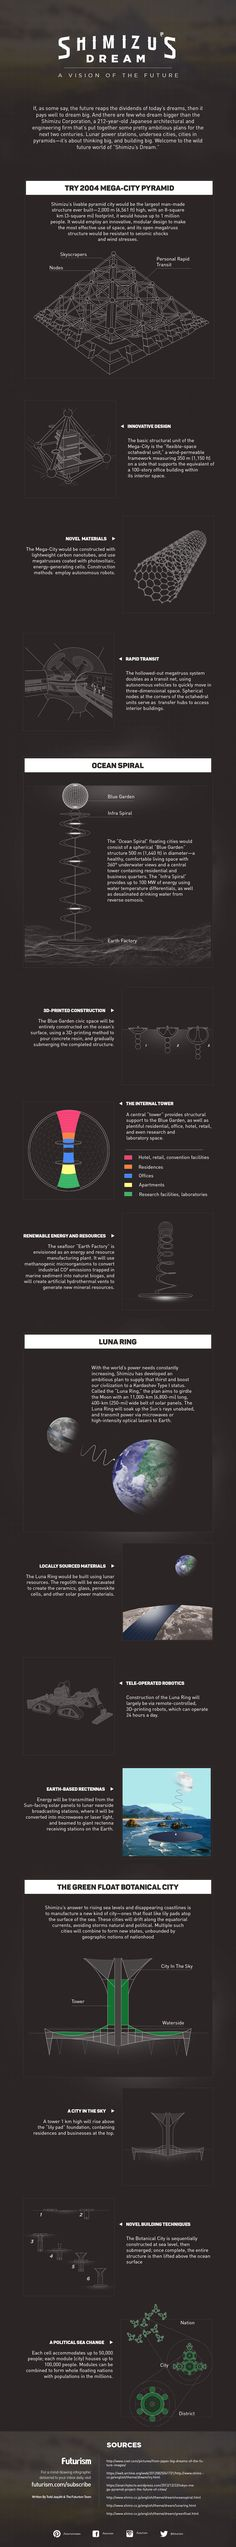 Shimizu's Dream: A Vision of the Future [INFOGRAPHIC]